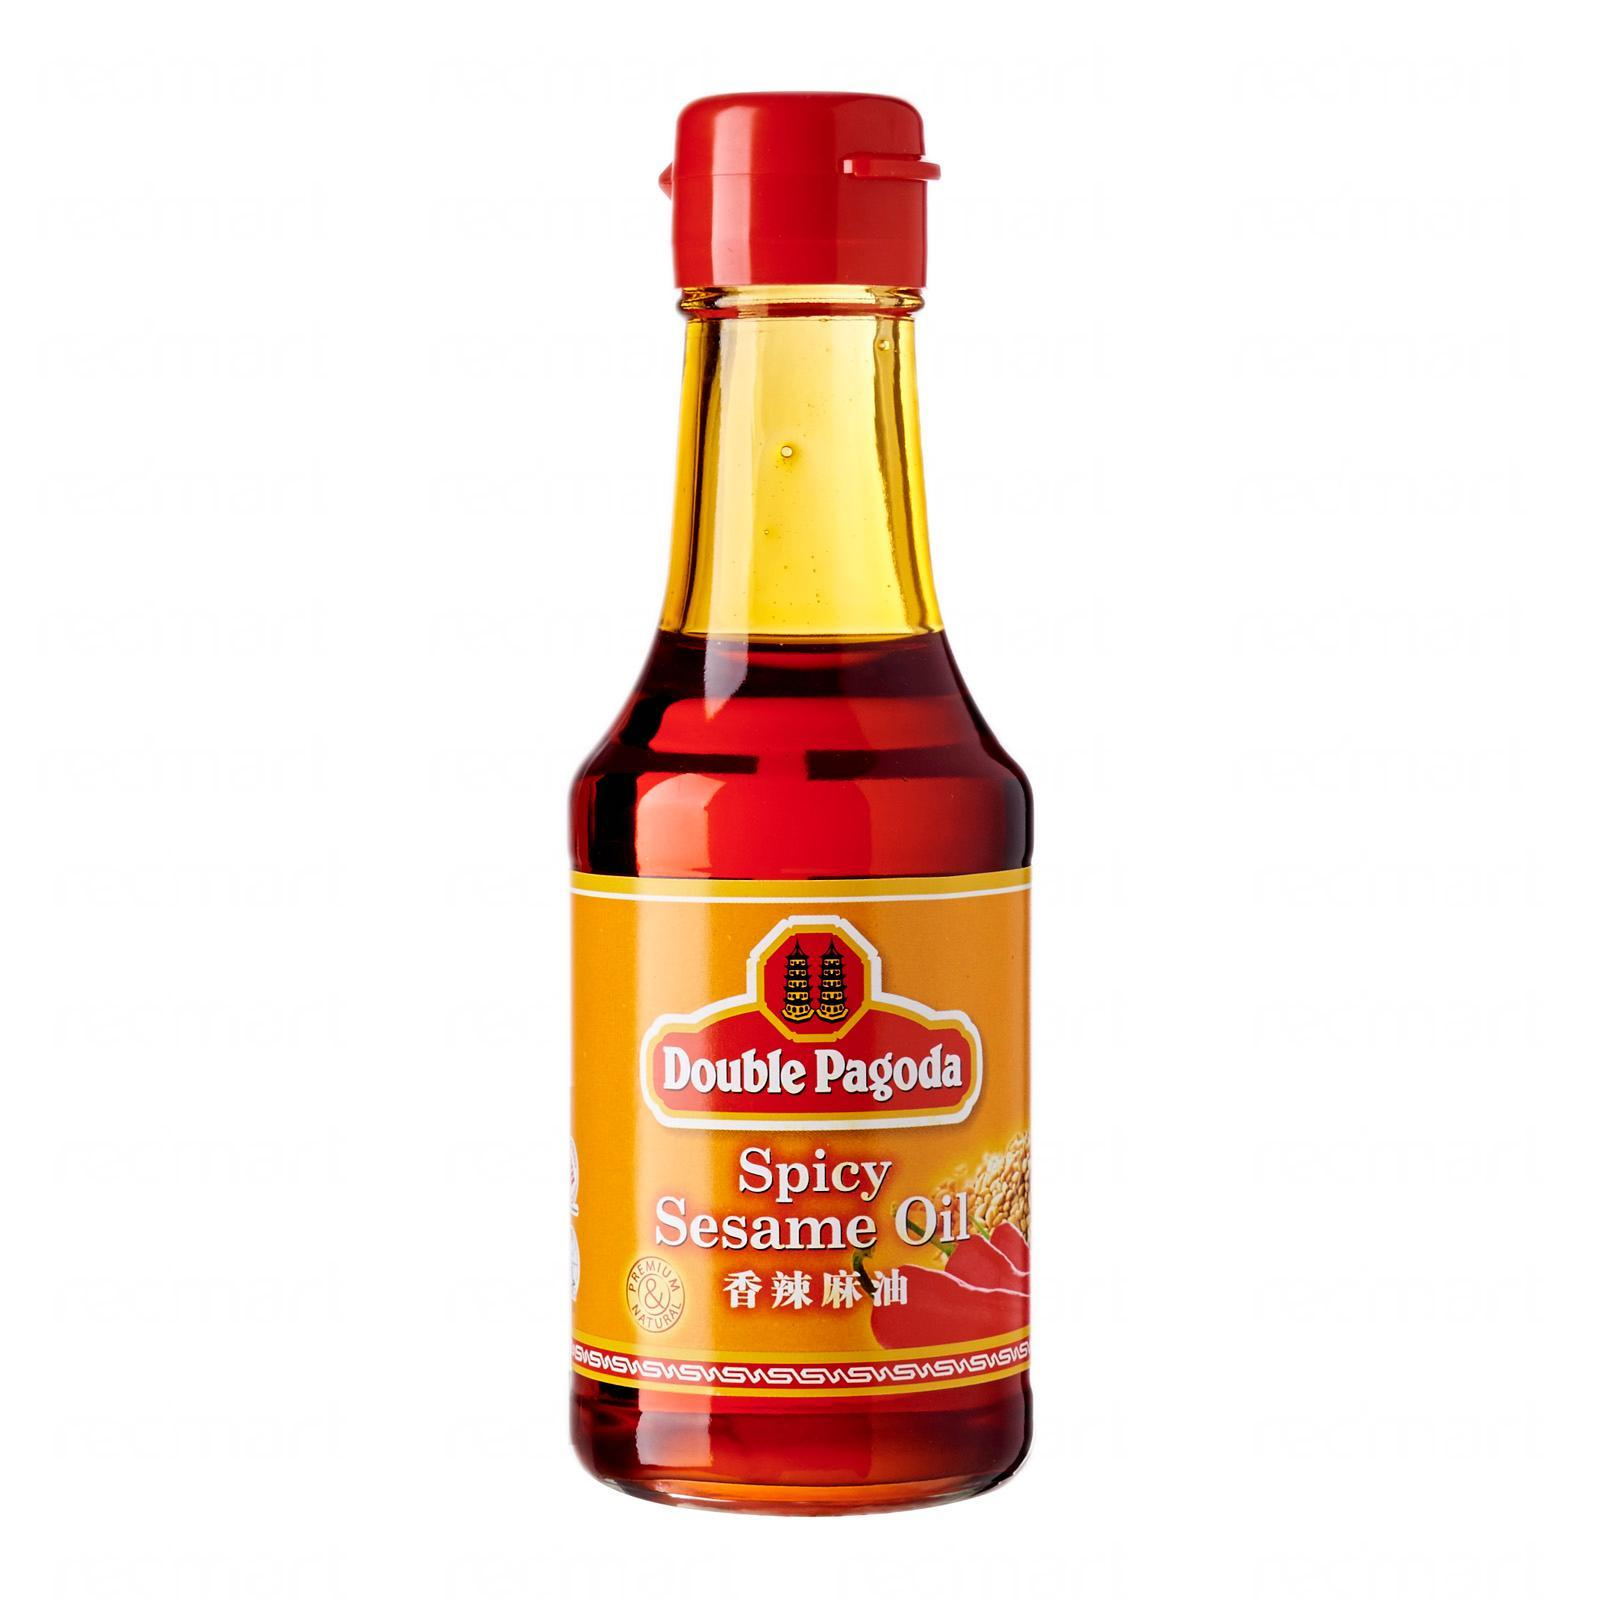 Double Pagoda Spicy Sesame Oil By Redmart.